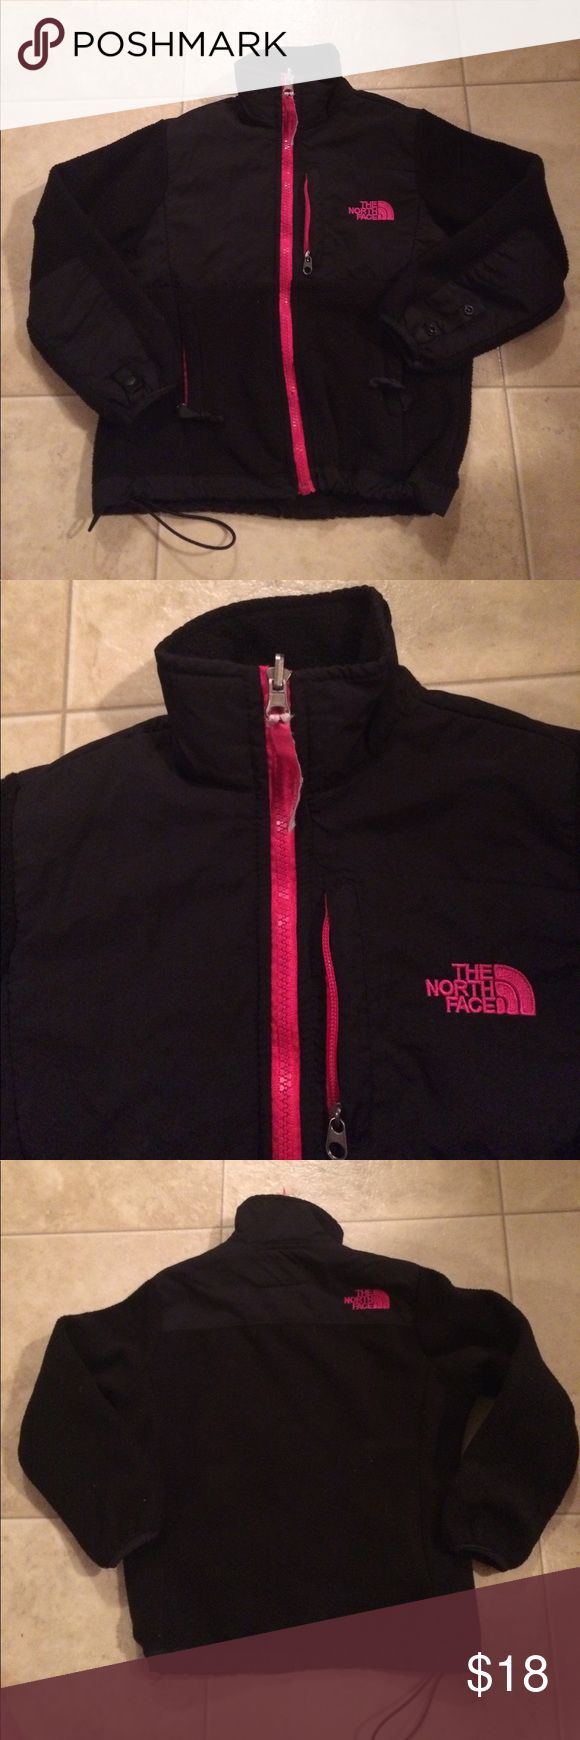 "$16 girls size S 7/8 north face Denali jacket Good used condition! ✔The price in the beginning of the title of my listings is the bundle price. These prices are valid through the ""make an offer"" feature after you create a bundle. These bundle orders must be over $15. Ask me about more details if interested.  ❌No trades ❌No holds North Face Jackets & Coats"